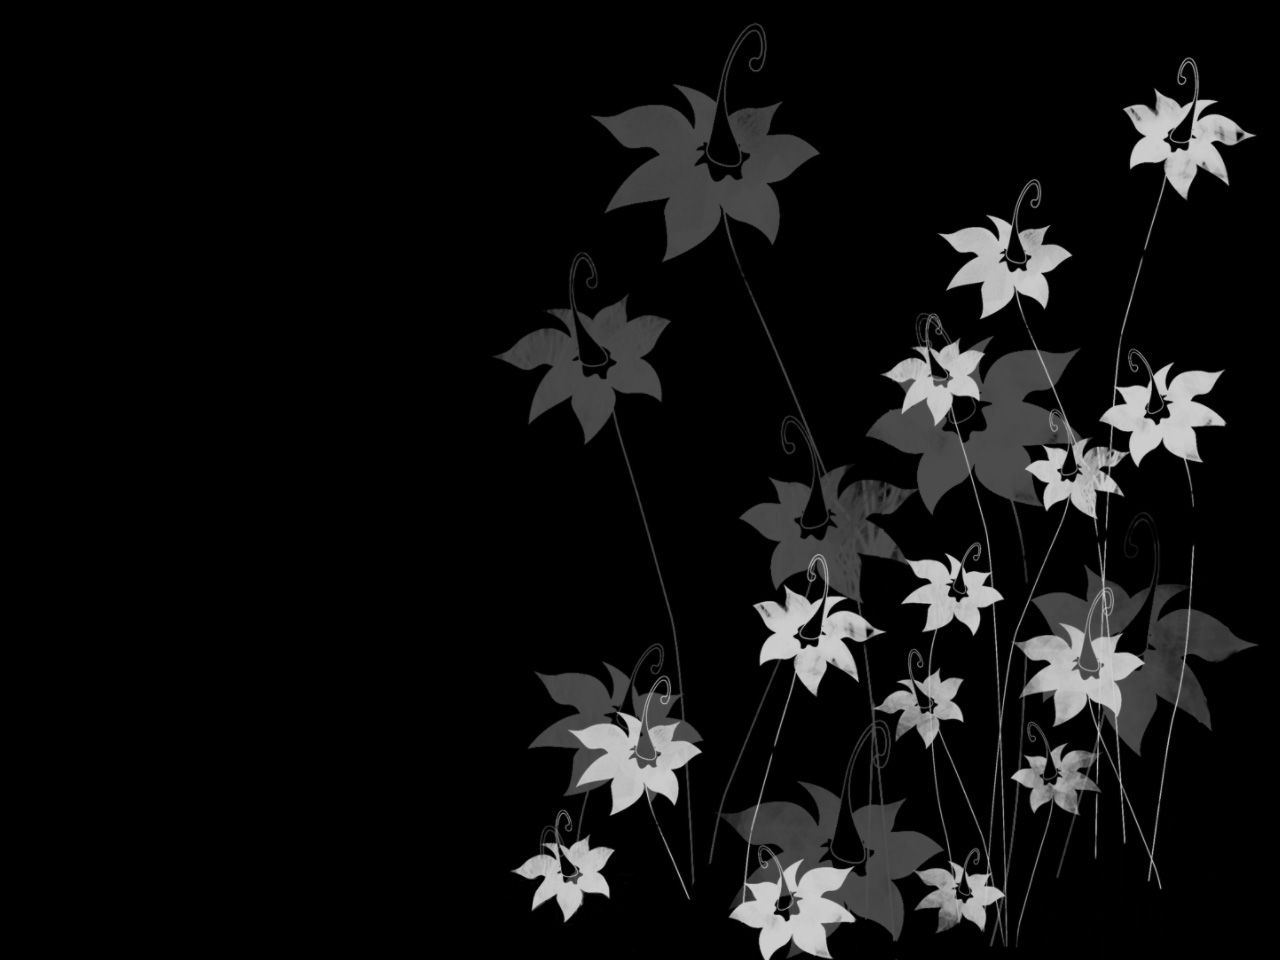 Flowers On Black Background Wallpaper 14 Hd Wallpaper ...